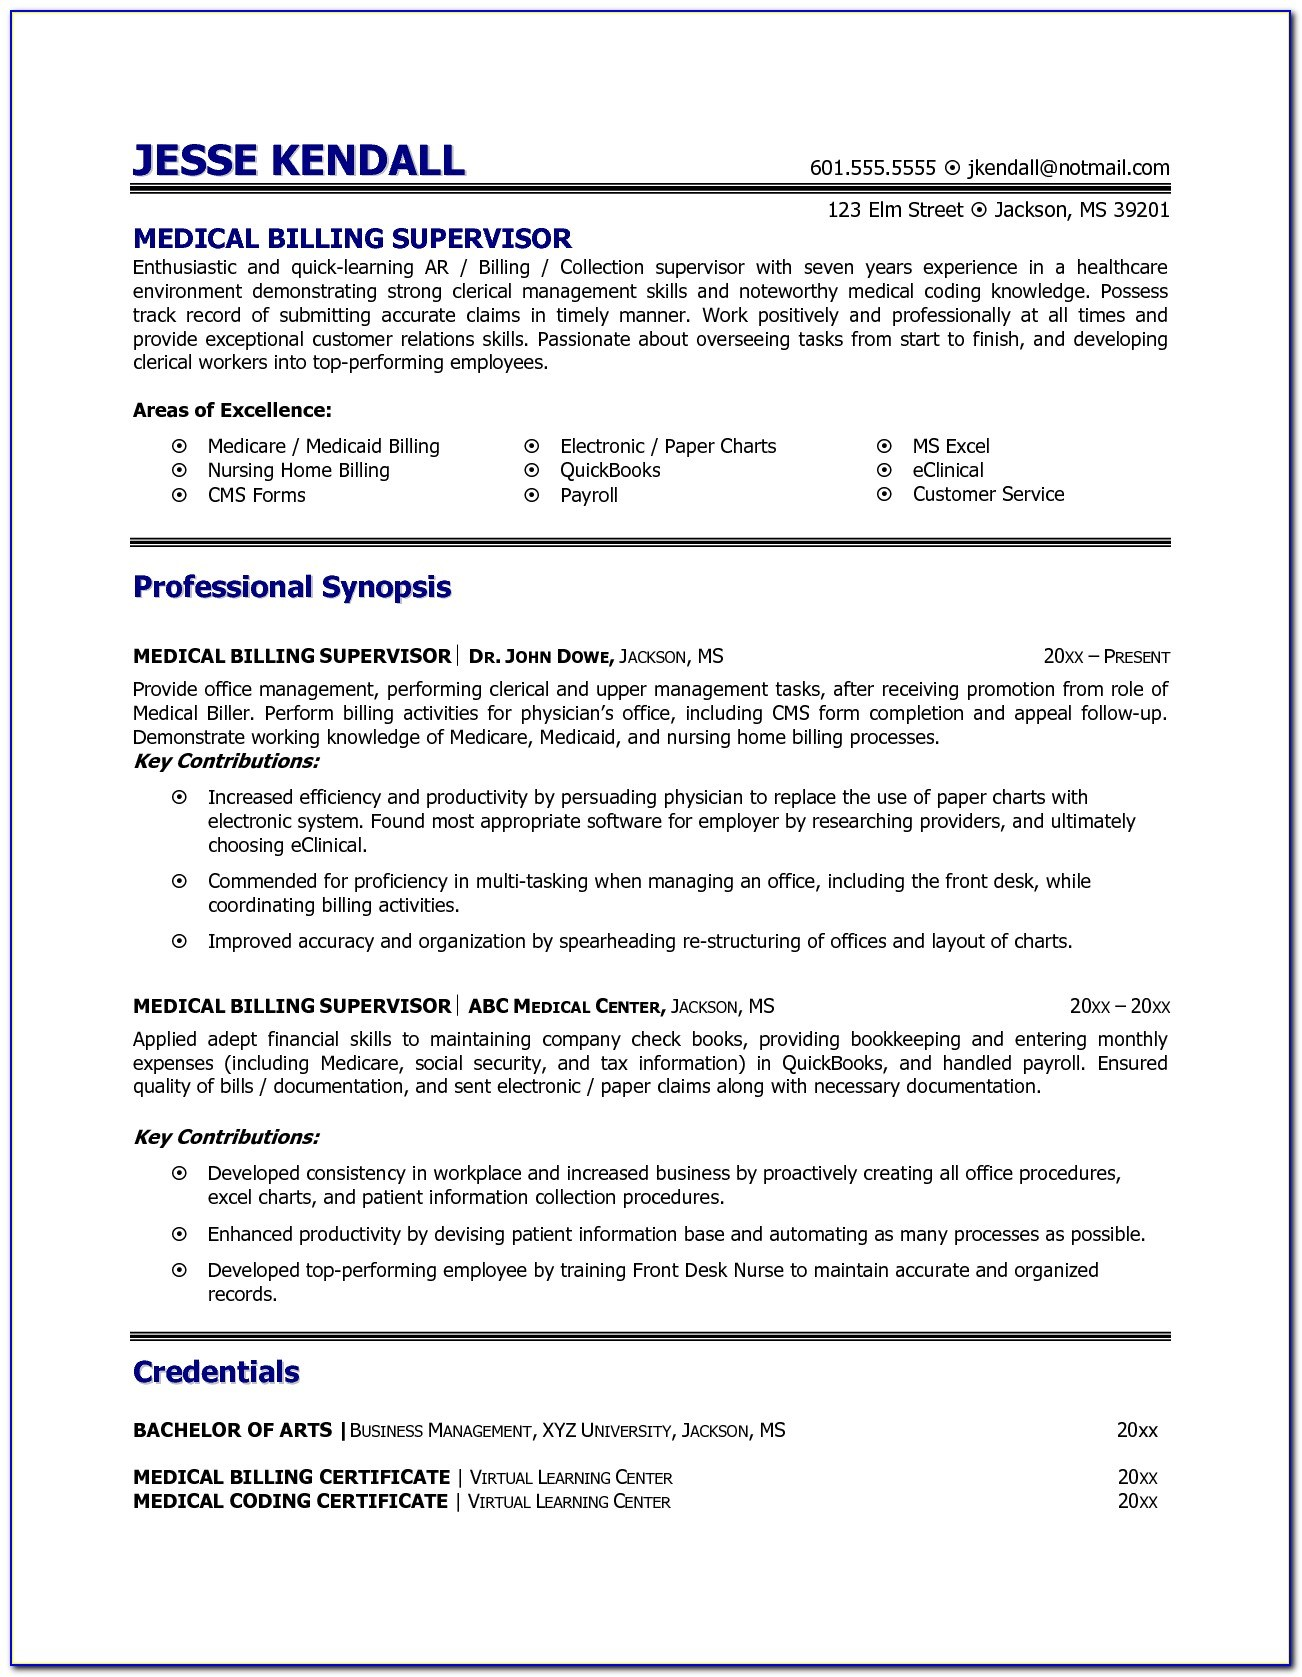 resume examples for medical billing and coding vincegray2014 samples brief summary search Resume Medical Billing Resume Samples